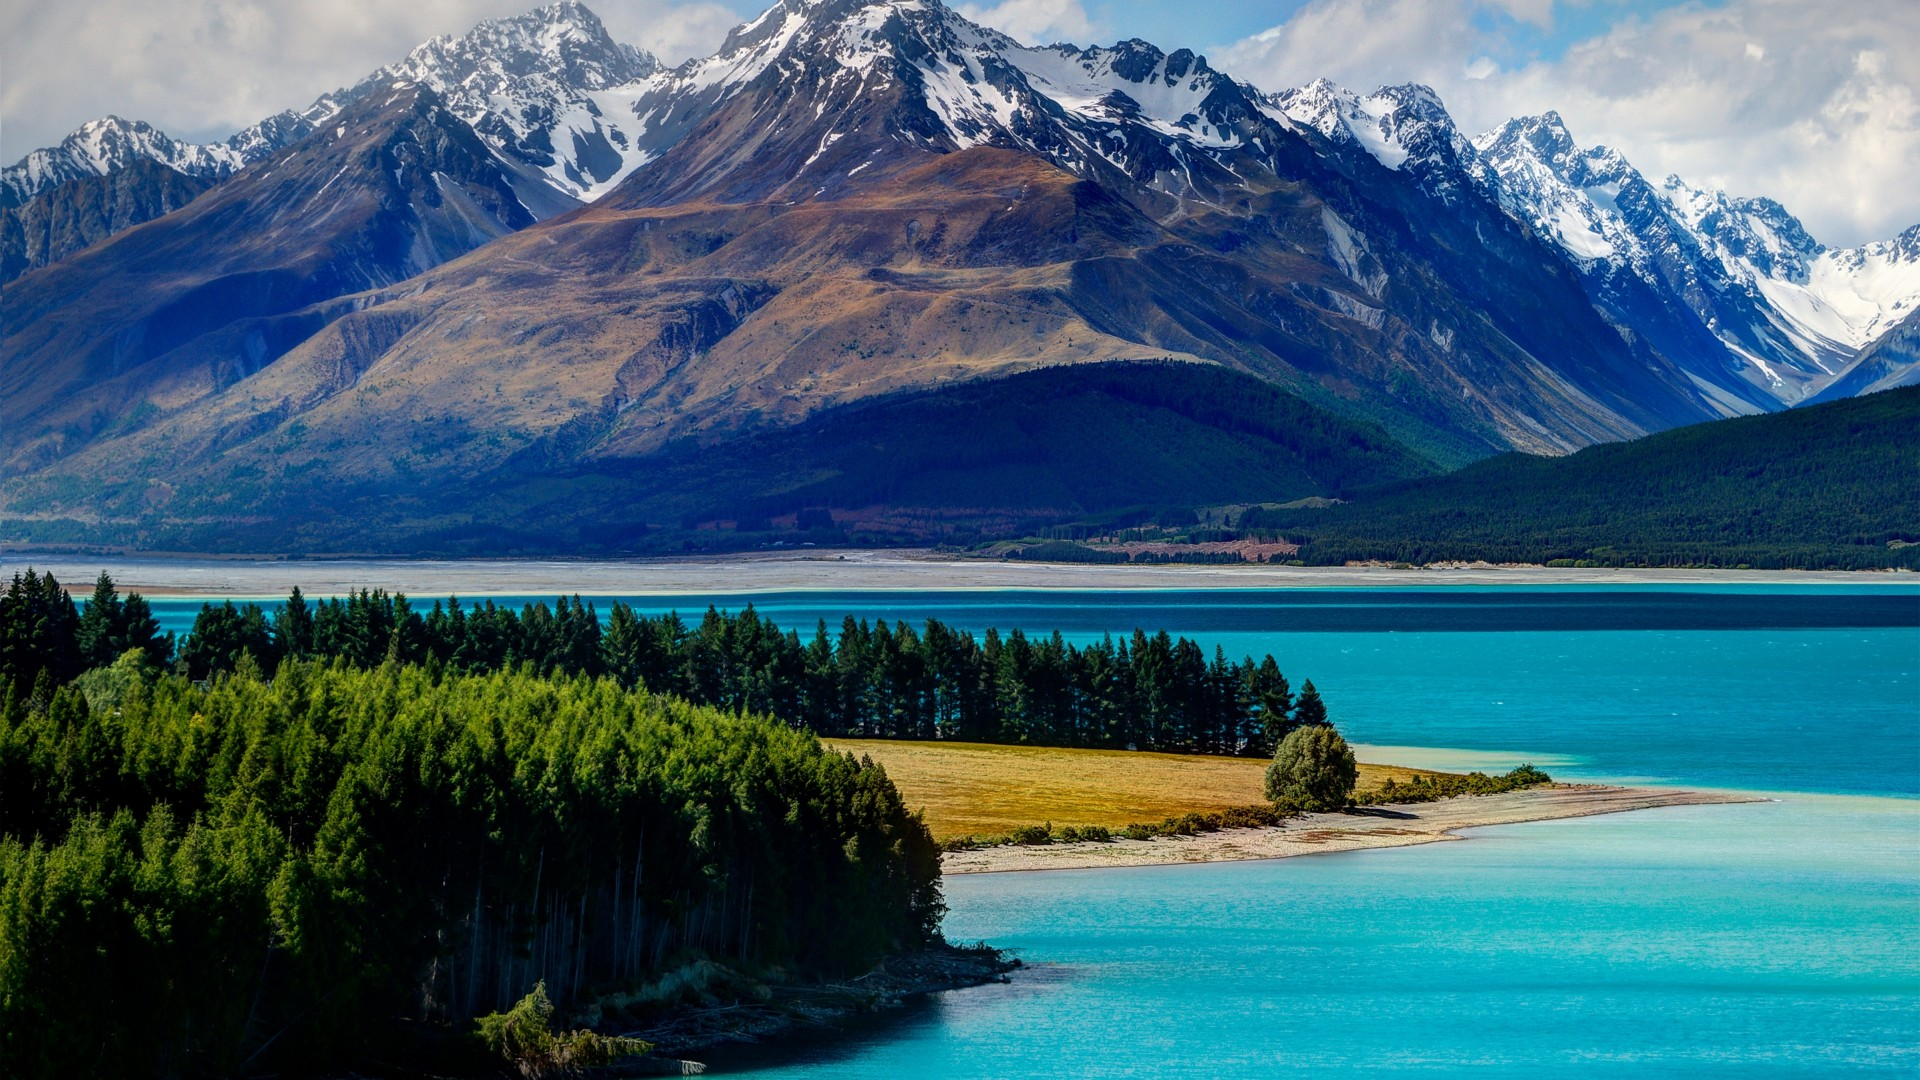 Lake Tekapo, 5k, 4k wallpaper, South Island, New Zealand, booking, rest, travel, mountains, sky, clouds, vacation (horizontal)